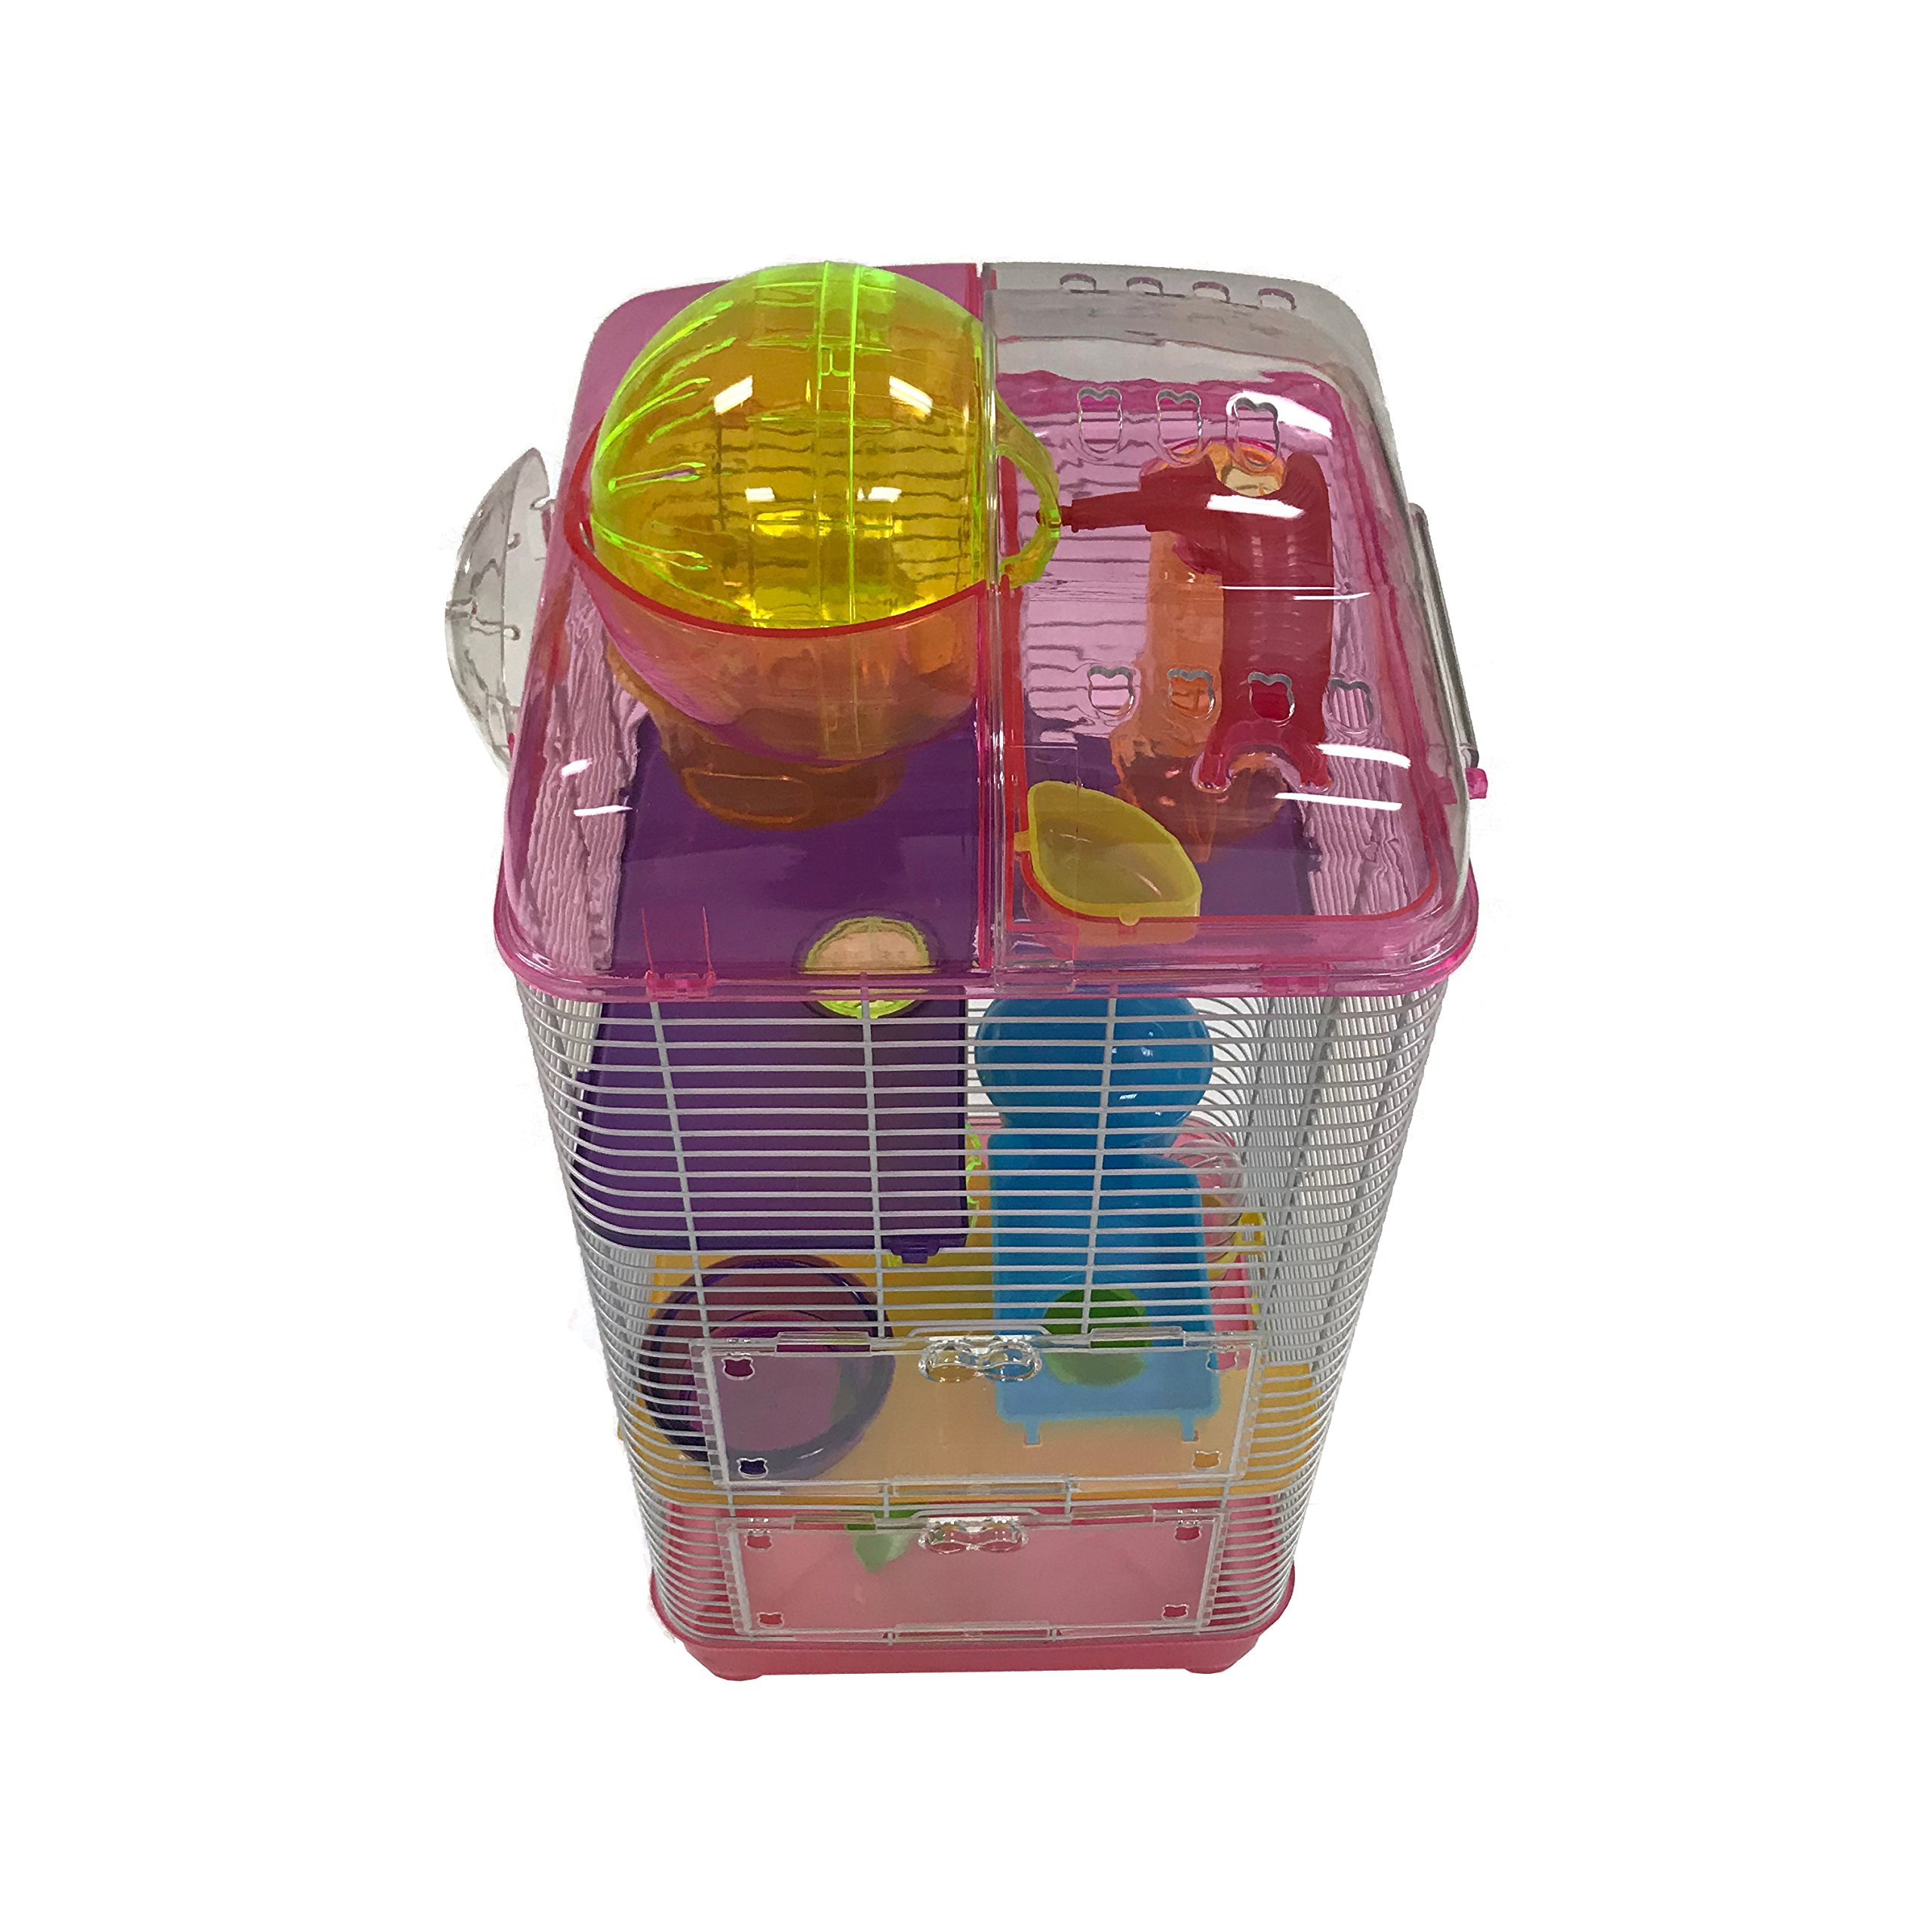 YML 3-Level Clear Plastic Dwarf Hamster Mice Cage with Ball on Top, Pink by YML (Image #3)